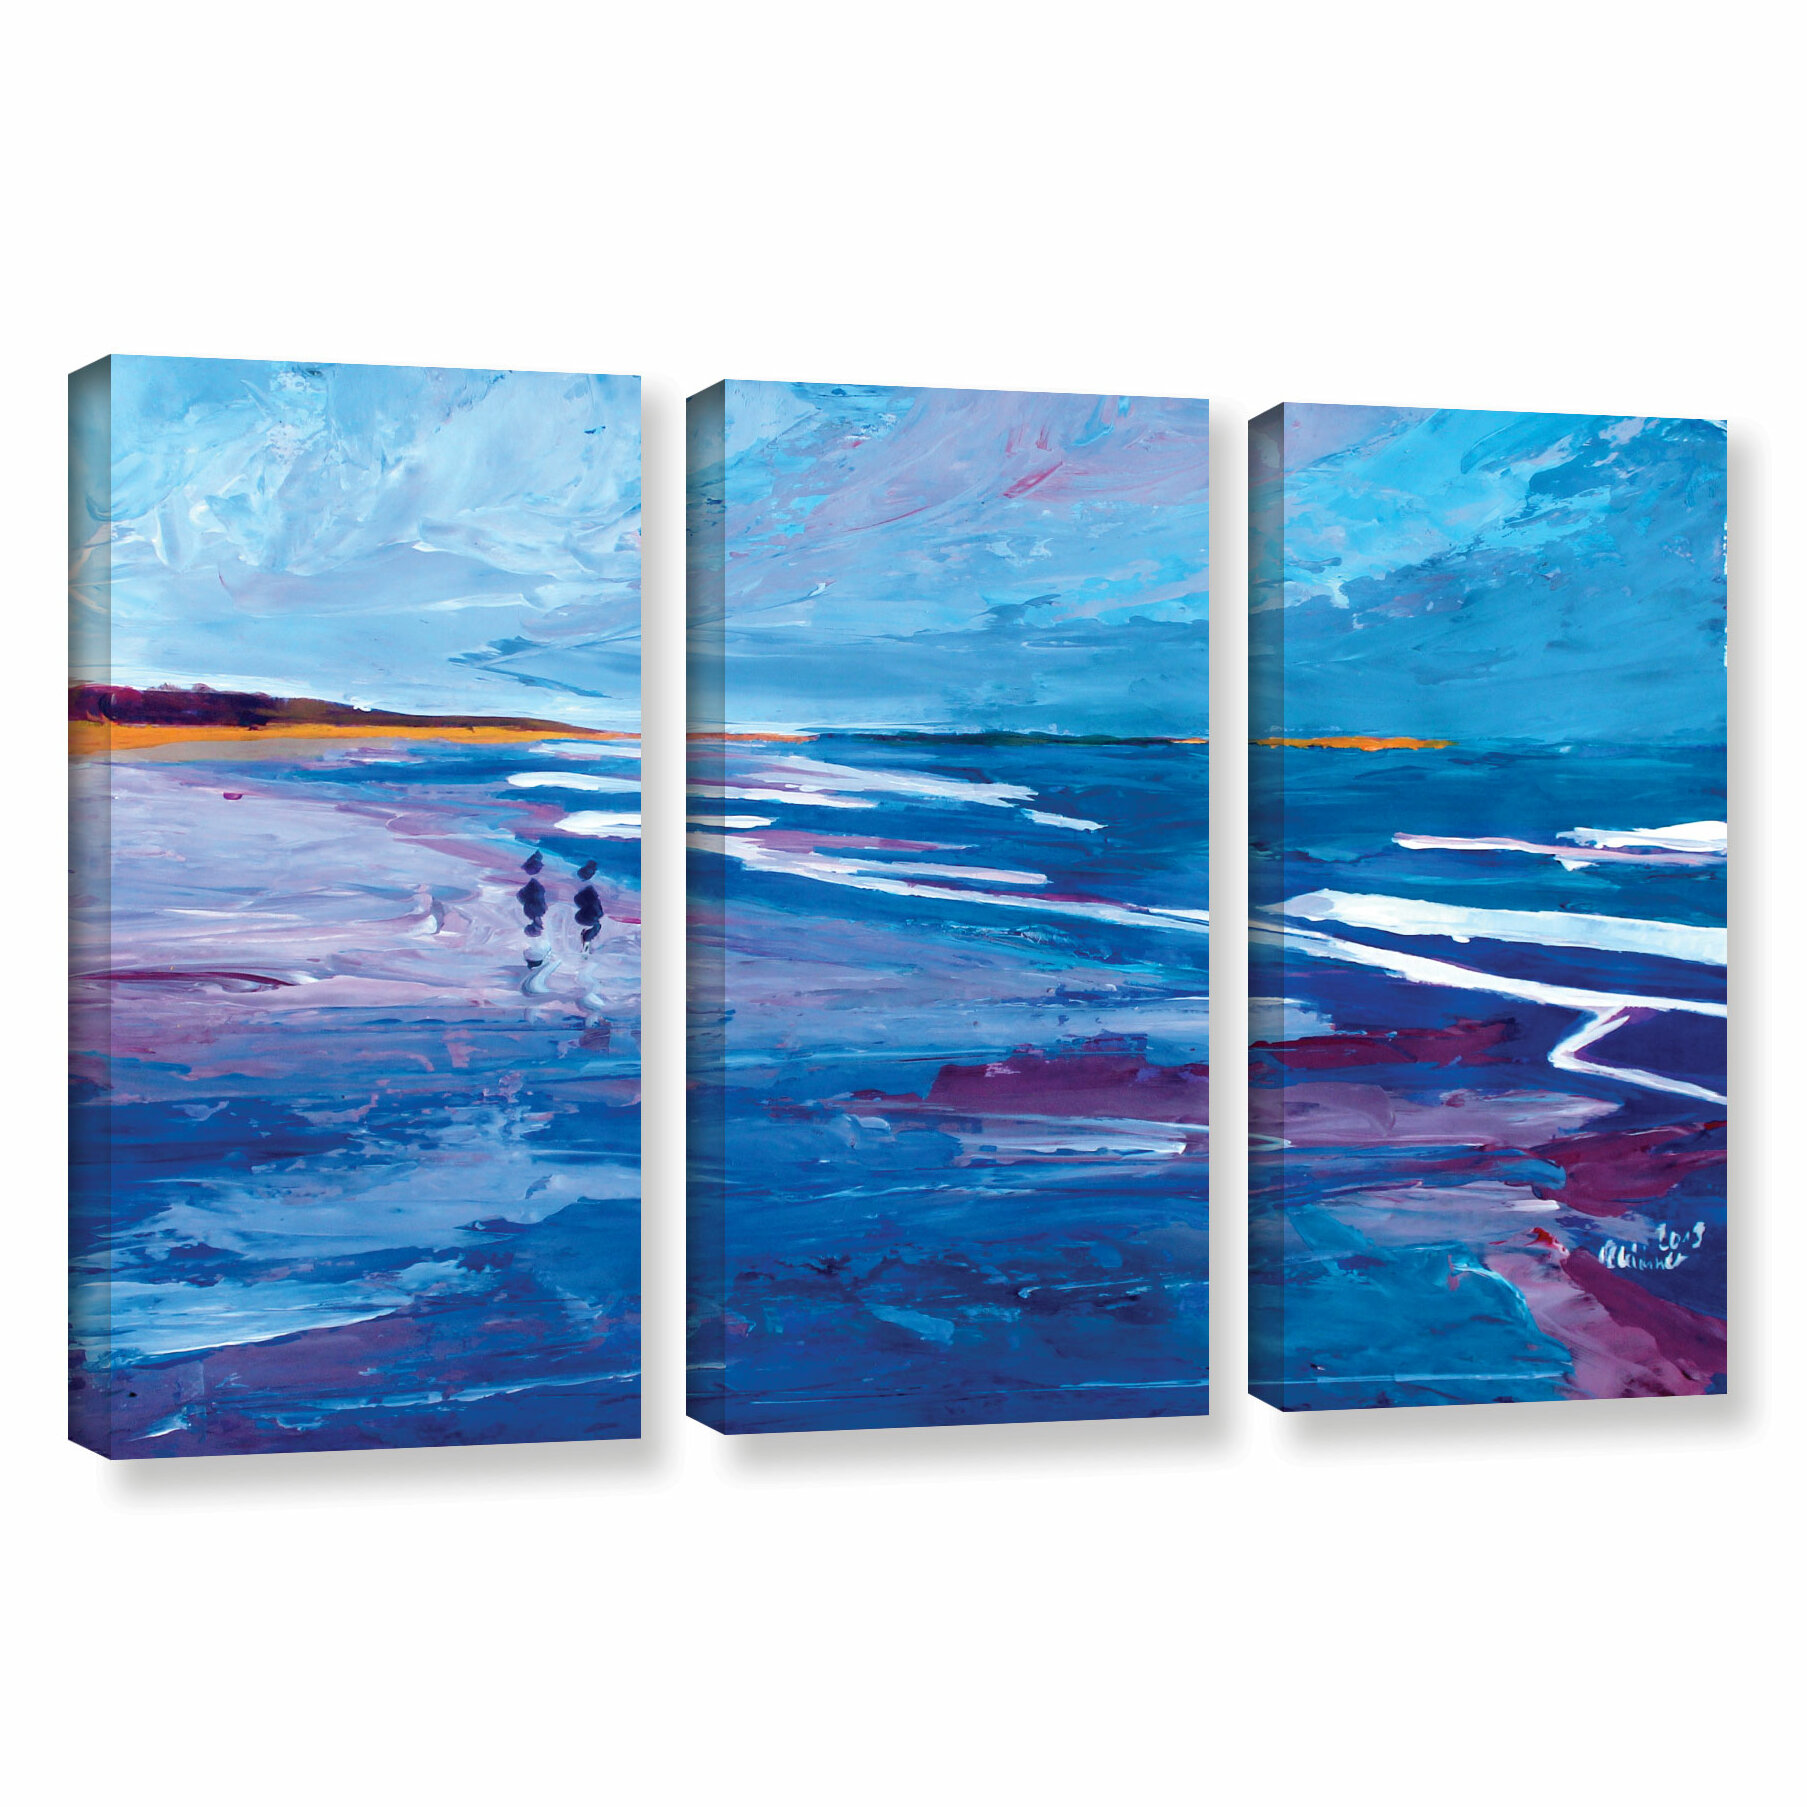 Artwall Seascape Near Big Sur By Marcus Martina Bleichner 3 Piece Painting Print On Wrapped Canvas Set Wayfair